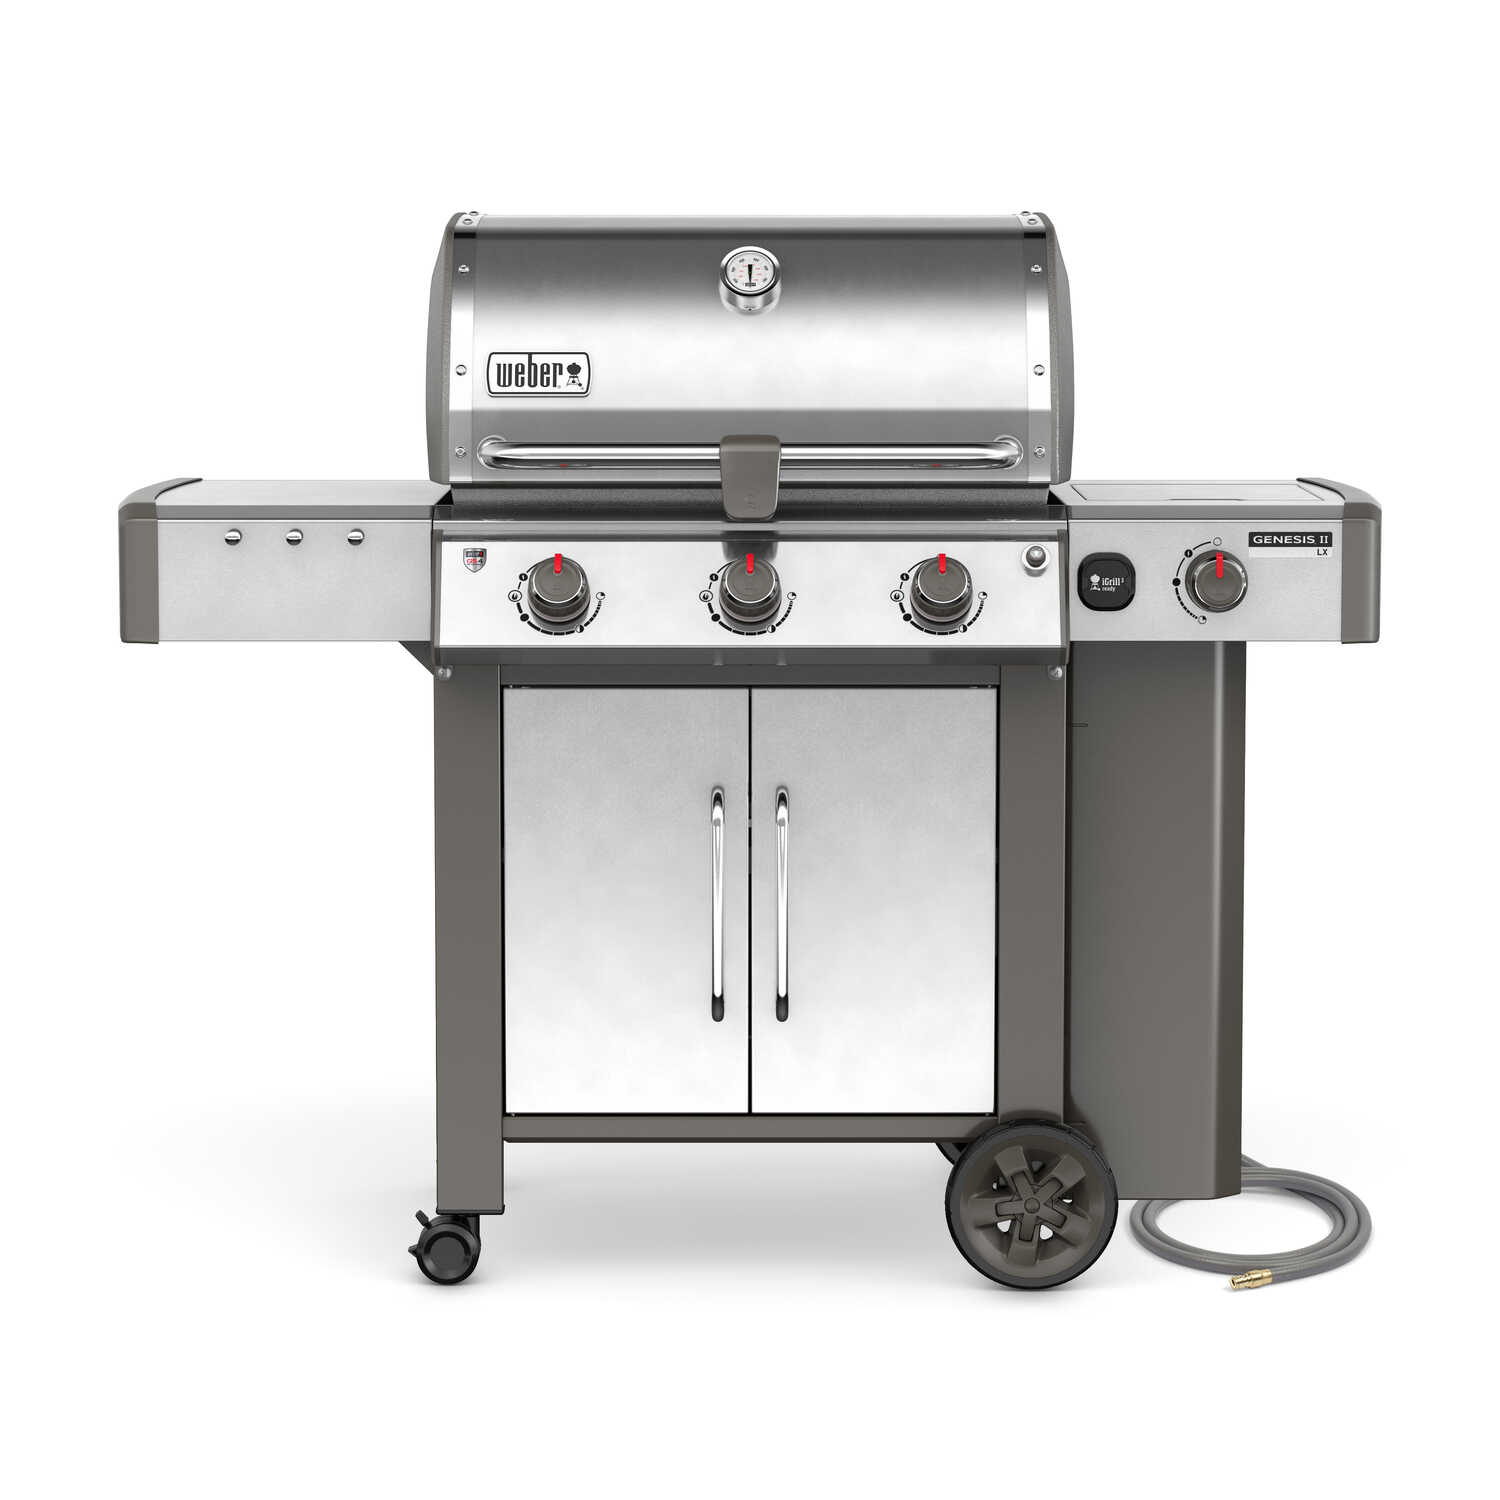 Weber  Genesis II LX S-340  3 burners Natural Gas  Grill  Stainless Steel  43500 BTU